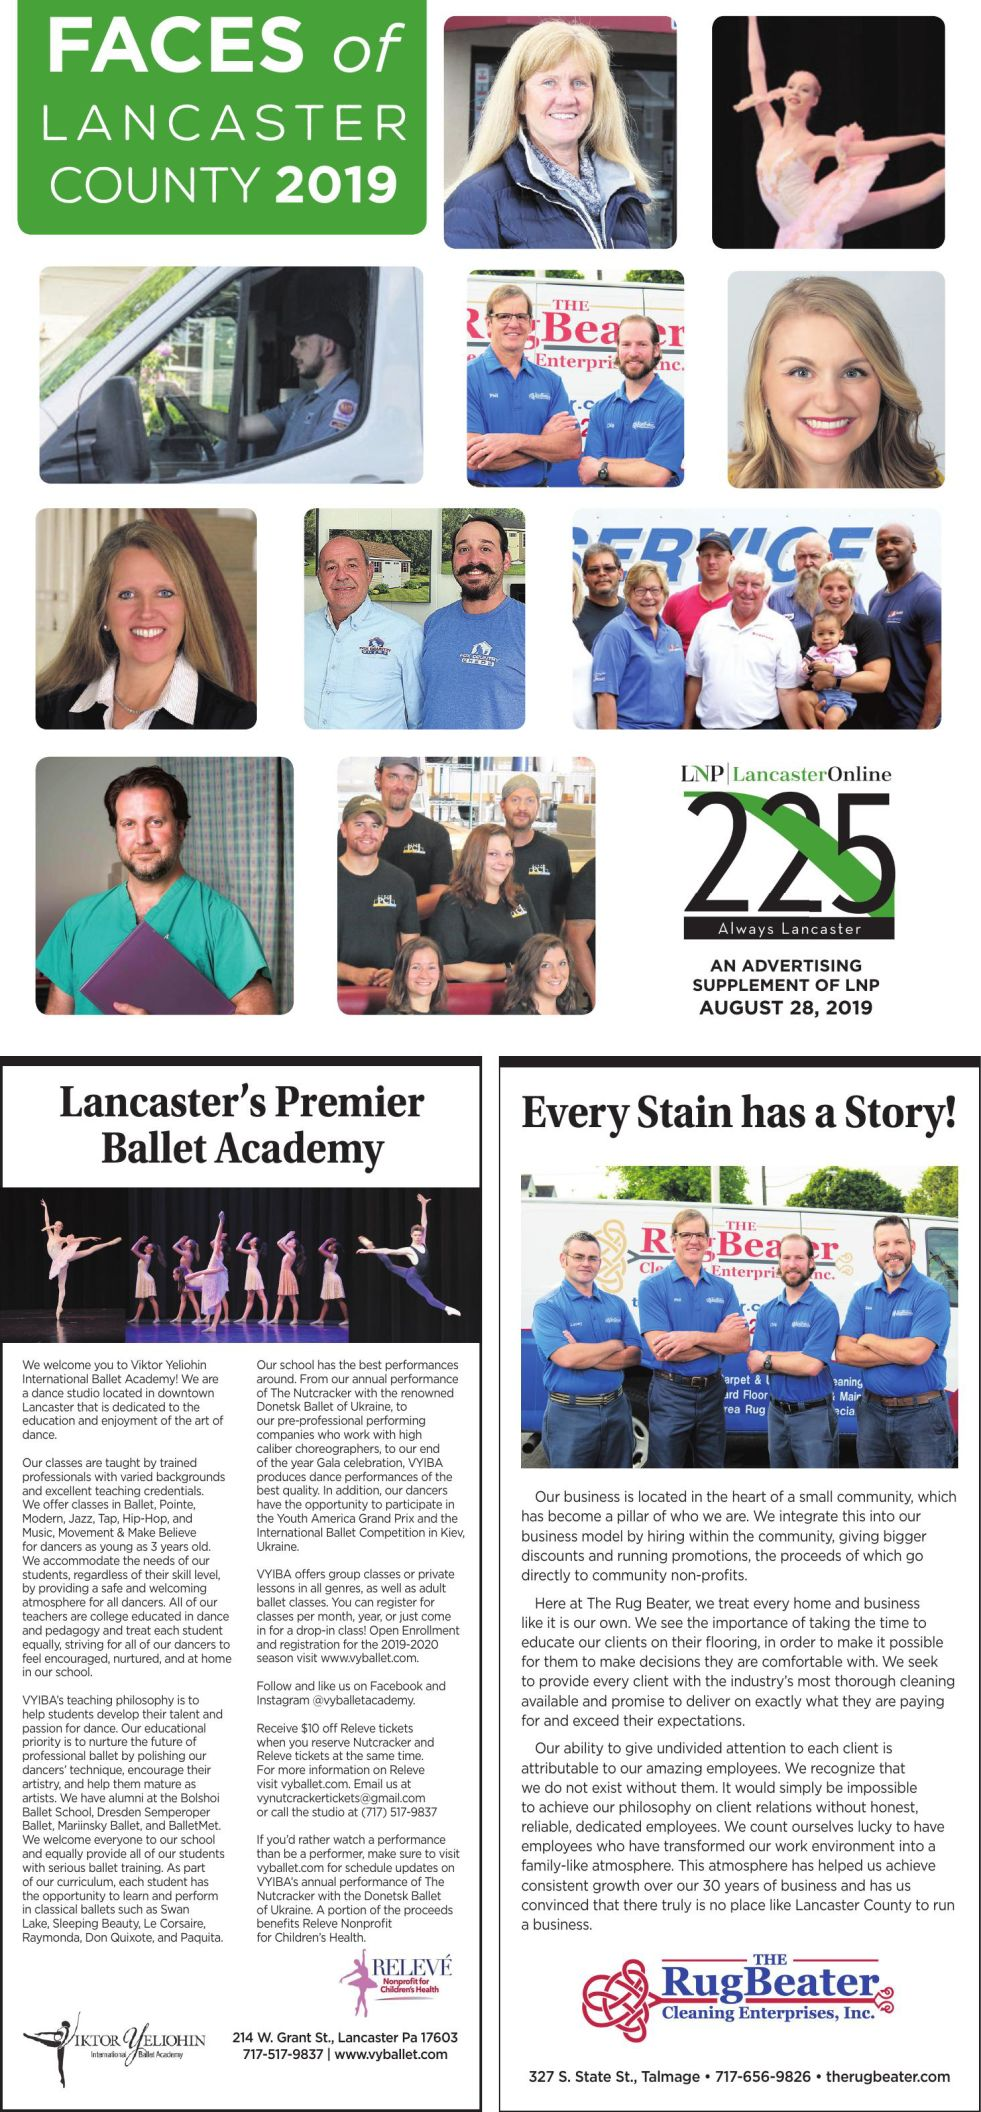 Faces of Lancaster County 2019